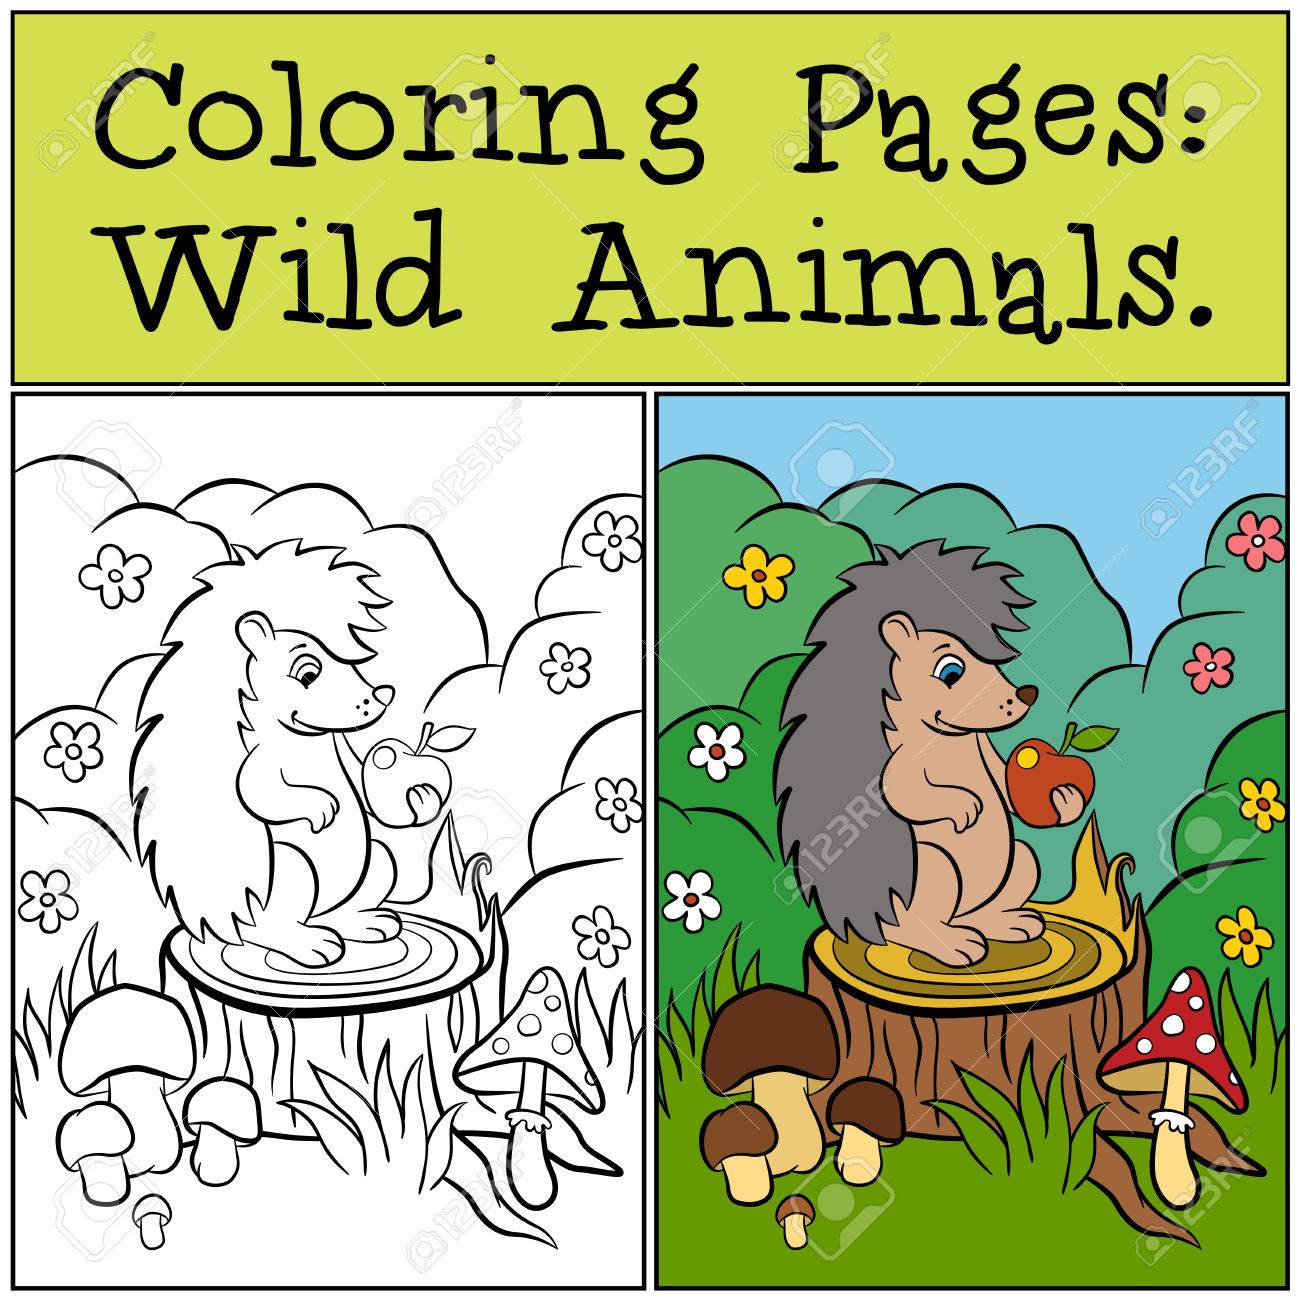 Coloring Pages: Wild Animals. Little Cute Hedgehog Sits On The ...